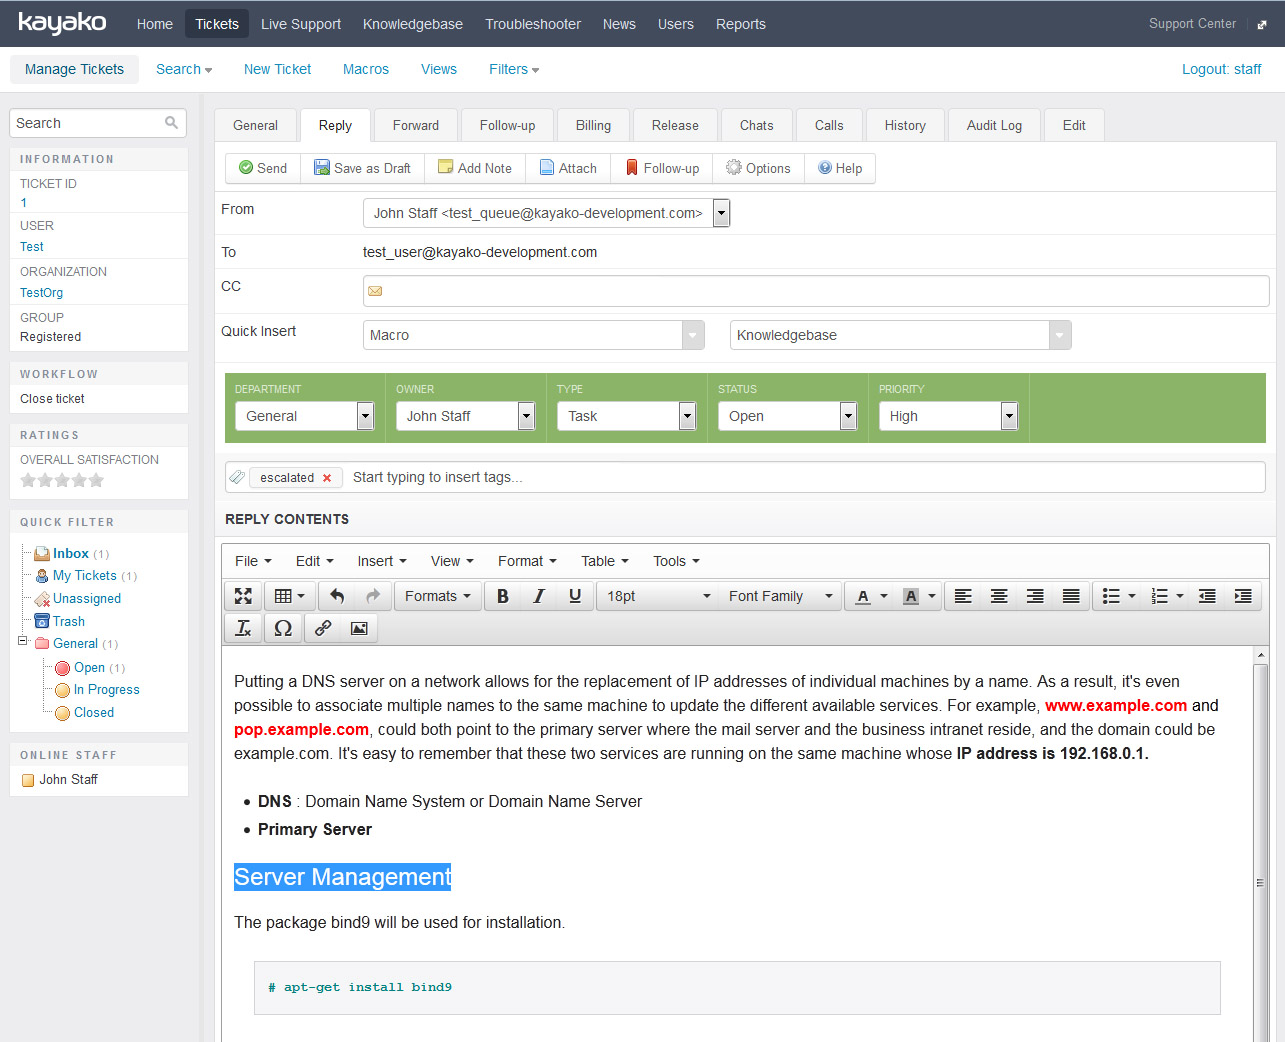 New ticket page with richtext editor